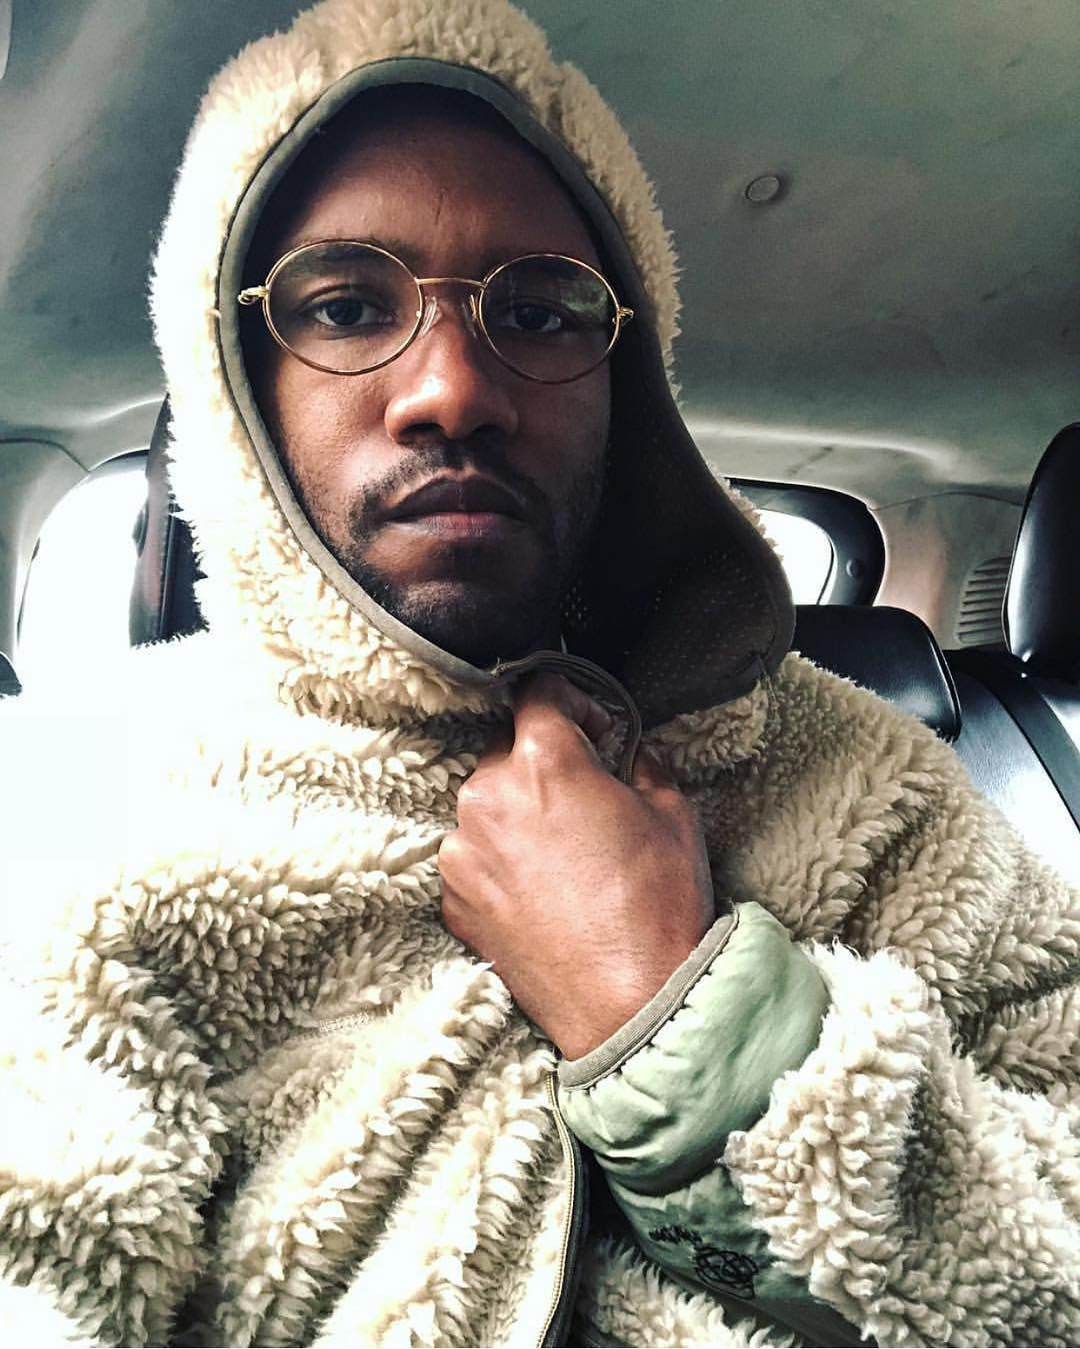 Image Result For Frank Ocean Itsfrankocean On Instagram Photos And